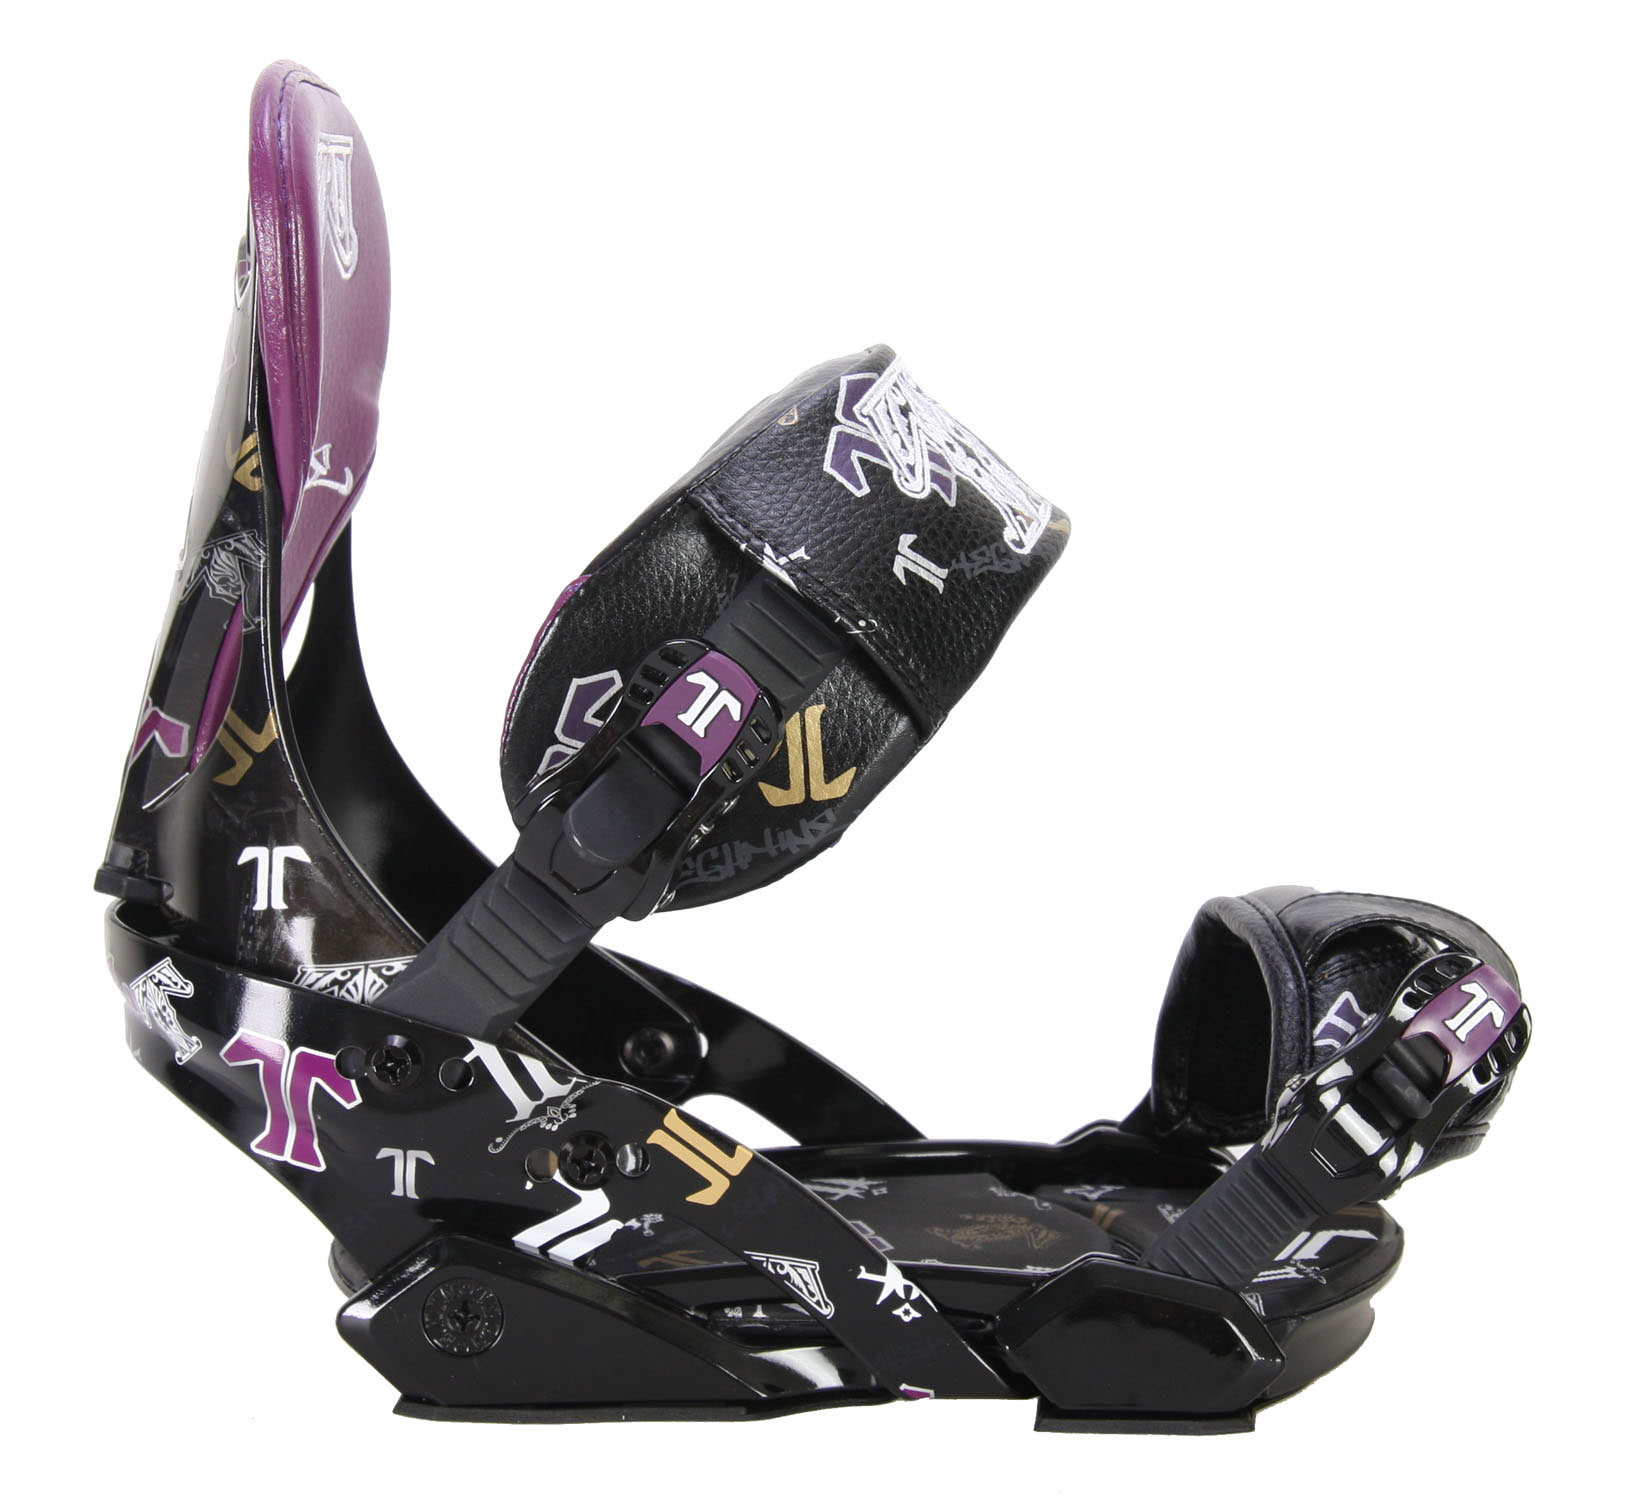 Snowboard Technine's T-Money Pro Series snowboard bindings give you high performance and a secure fit. The all-new T9 geometry enforces your stance in all the right places, and the aluminum heel cup gives you plenty of lockdown on your toe side edge. The tool-free ladders are easily adjustable so you get set exactly how you like. Molded EVA pads provide comfort and cushioning in critical zones. Get pro performance with the Technine T-Money snowboard bindings.Key Features of The Technine T-Money Pro Snowboard Bindings: All new T9 Geometry!! 6061 T6 Aluminum Heelcup 3D Molded EVA Ankle Straps Baltimore Toe Strap Adjustable Highback Rotation Tool-free Quick Adjust Ladders Molded toe, disc cover, and heel ramp EVA pads Cast-aluminum ratchets with custom rubber logo grips Sizing: small (6-8  medium (8-10  large (10 - $89.95